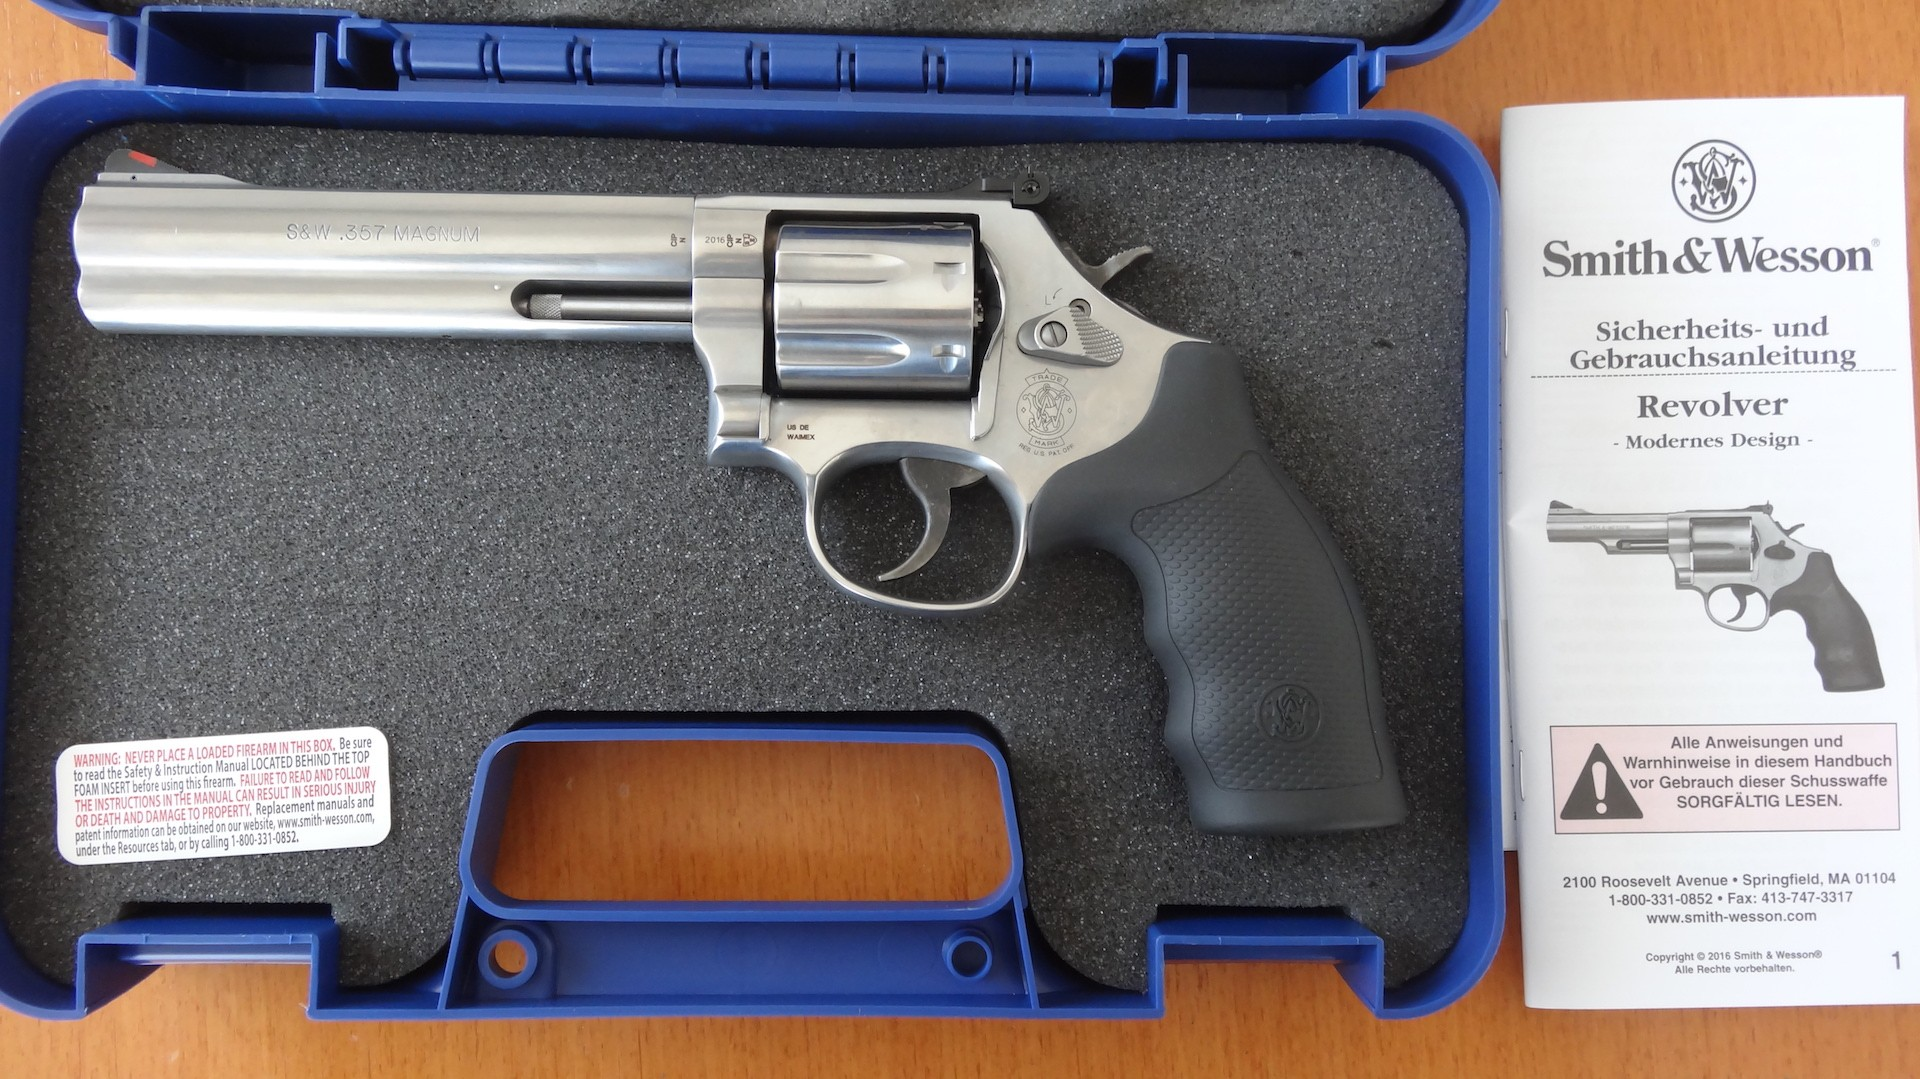 Smith & Wesson Revolver: Mod. 686 WO Plus 7- Schuss .357 Magnum.